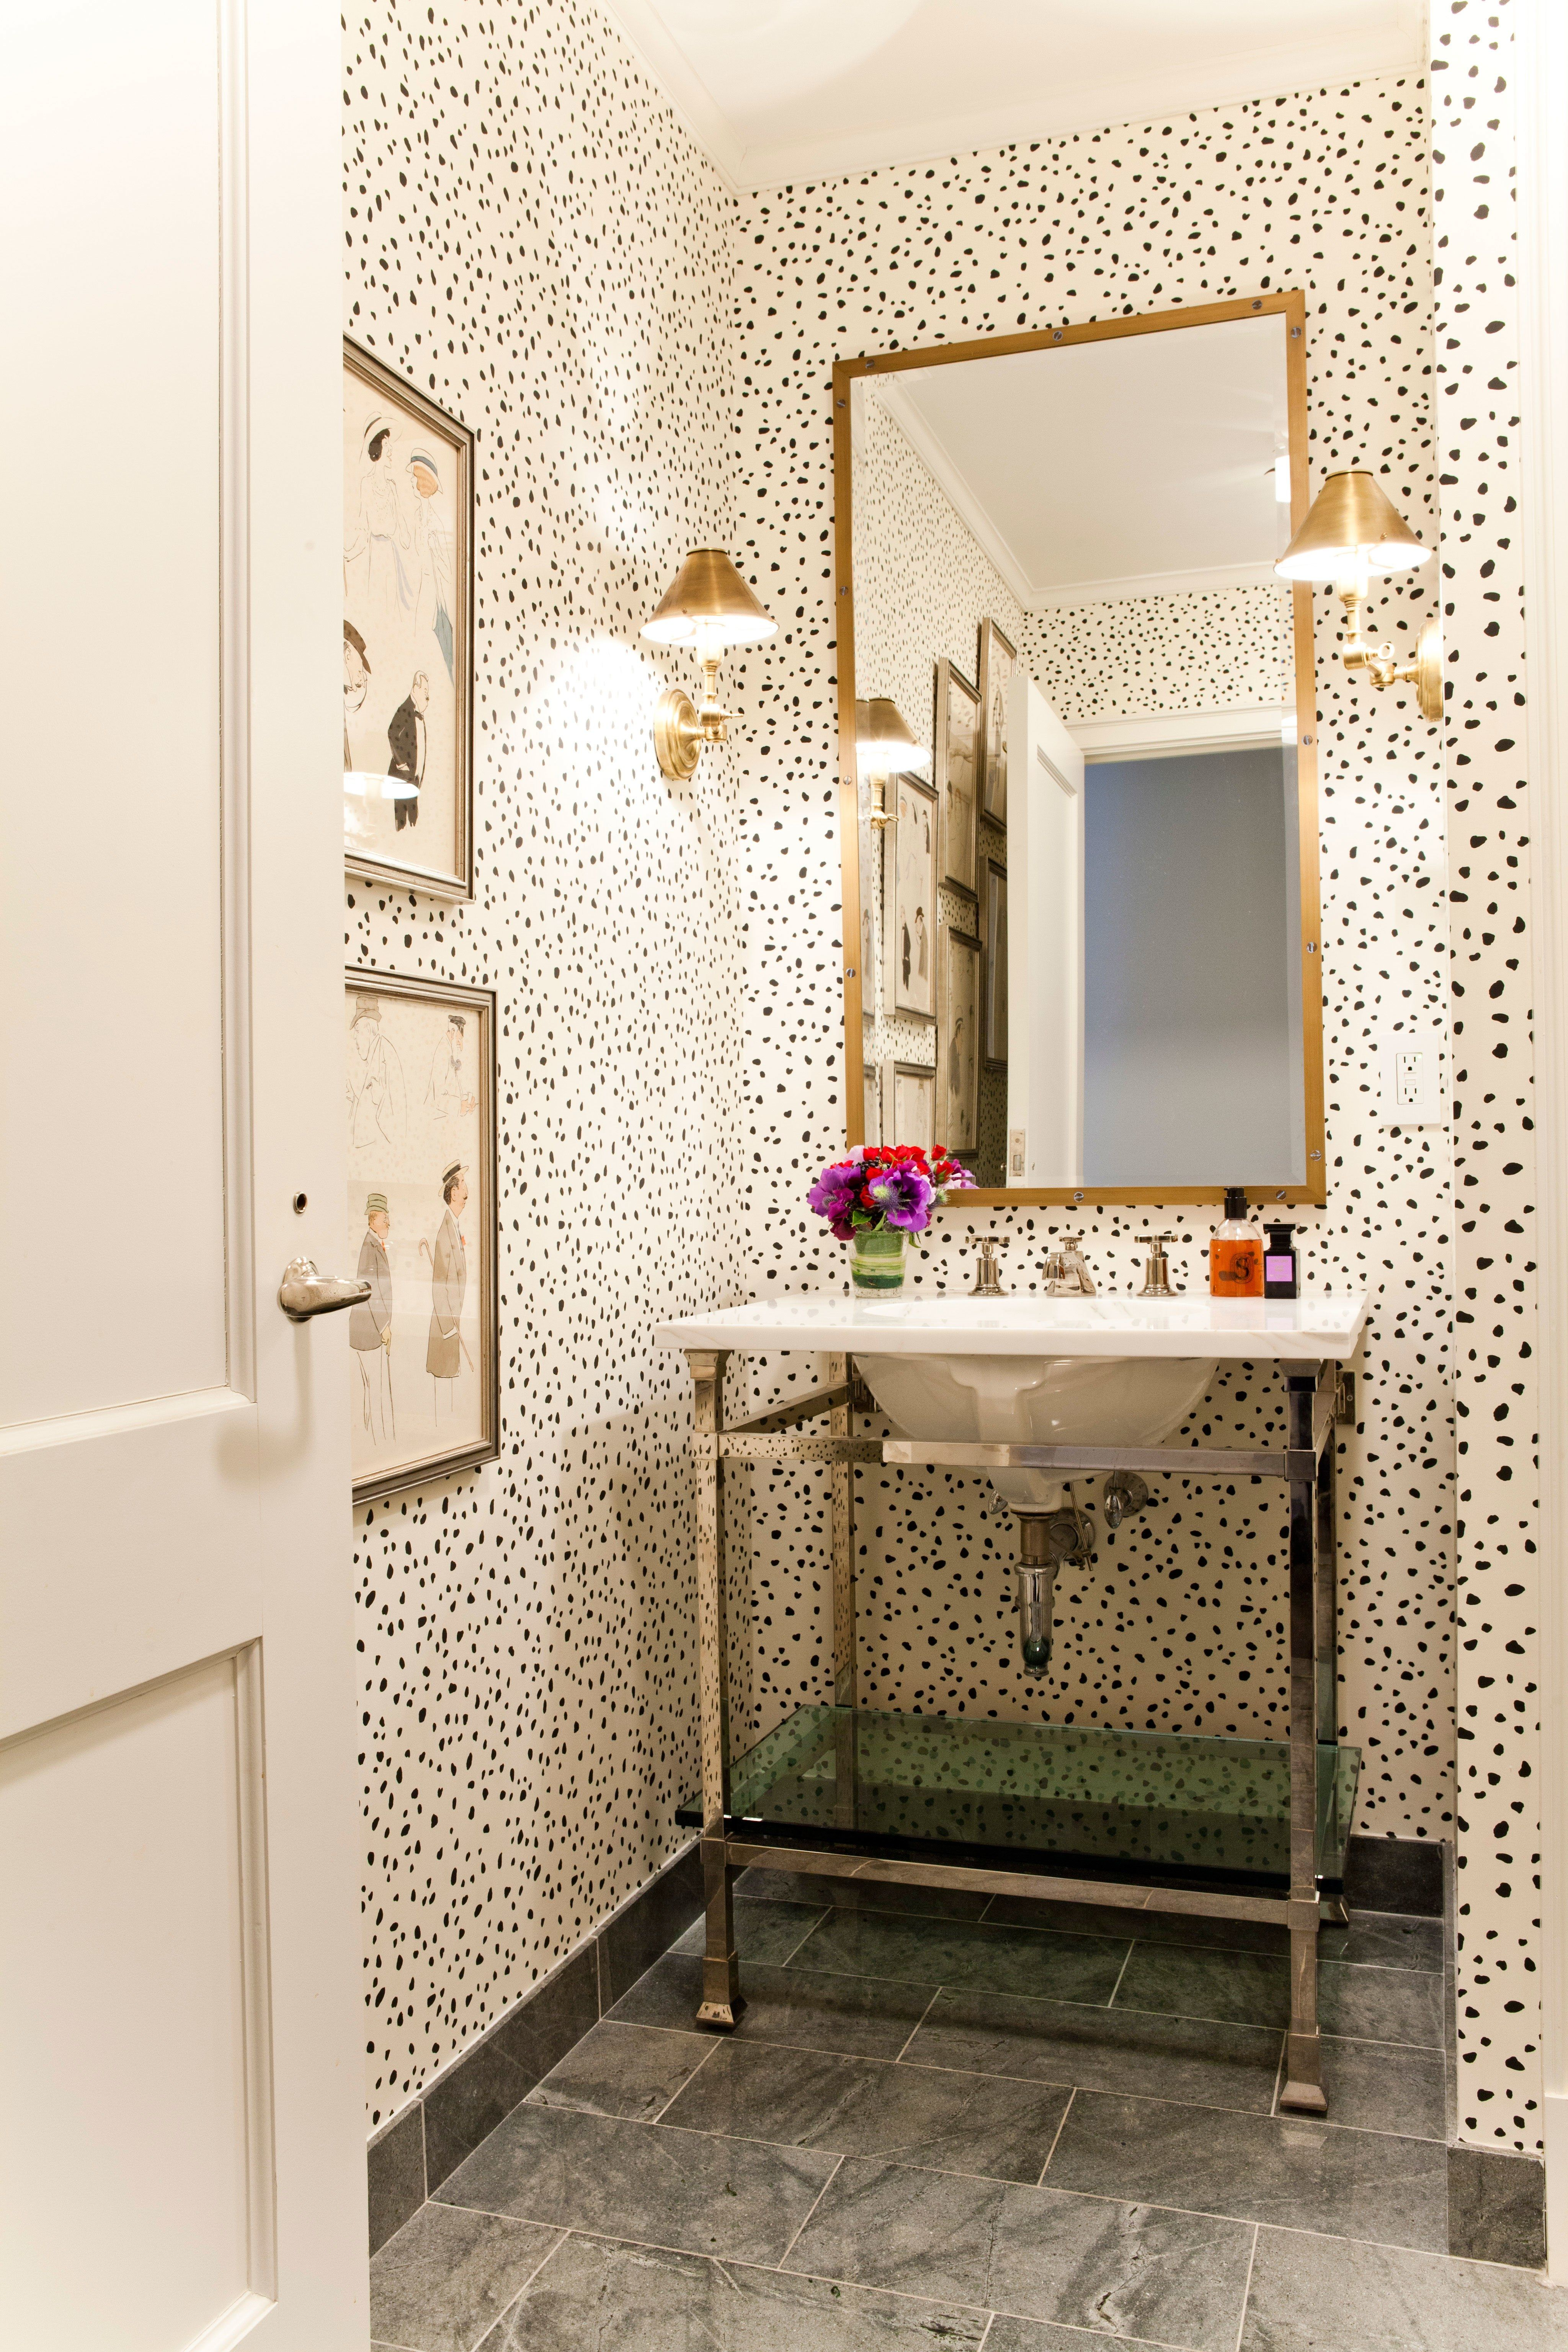 How To Brighten Up A Dark Room Small Bathroom Decor